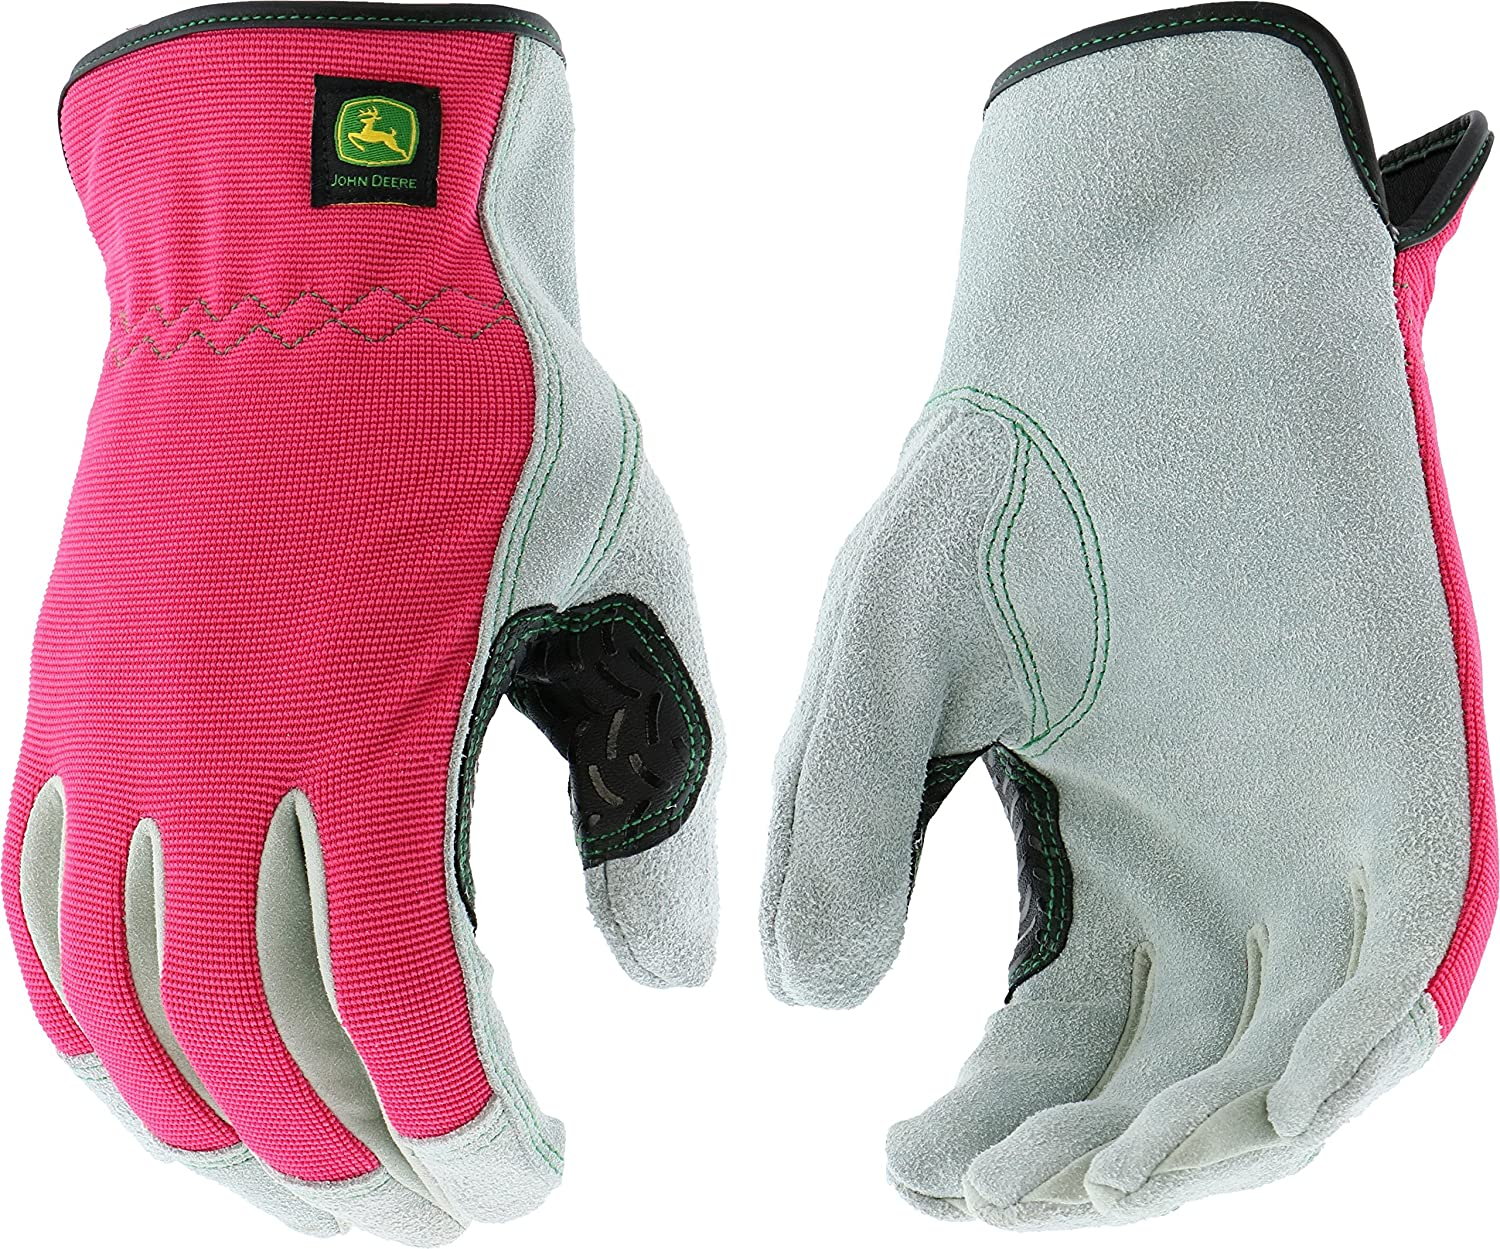 West Chester John Deere JD00016 Split Cowhide Leather Palm Work Gloves: Pink, Women's Small/Medium, 1 Pair